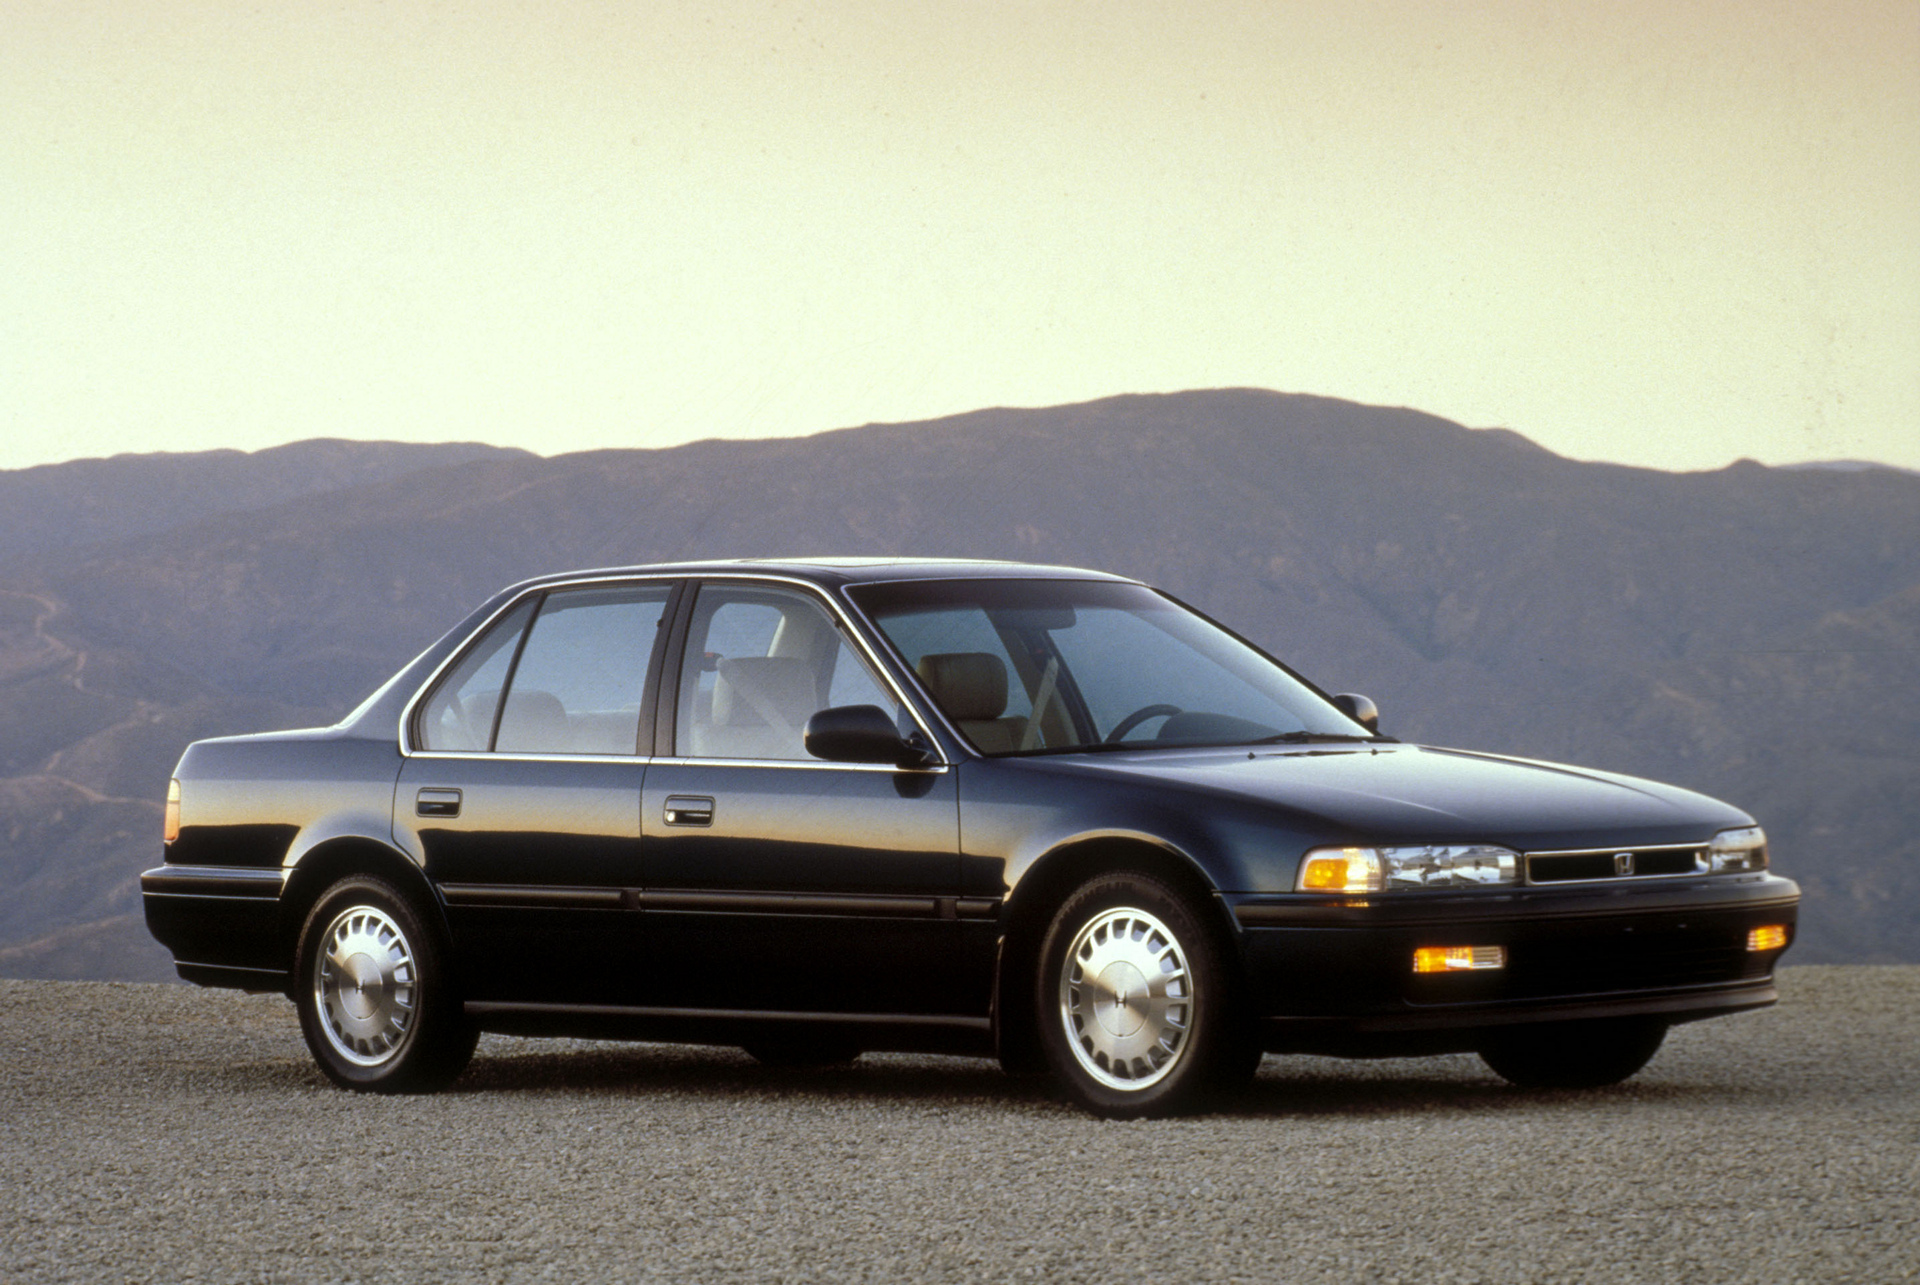 1991 Accord 4th Generation © Honda Motor Co., Ltd.